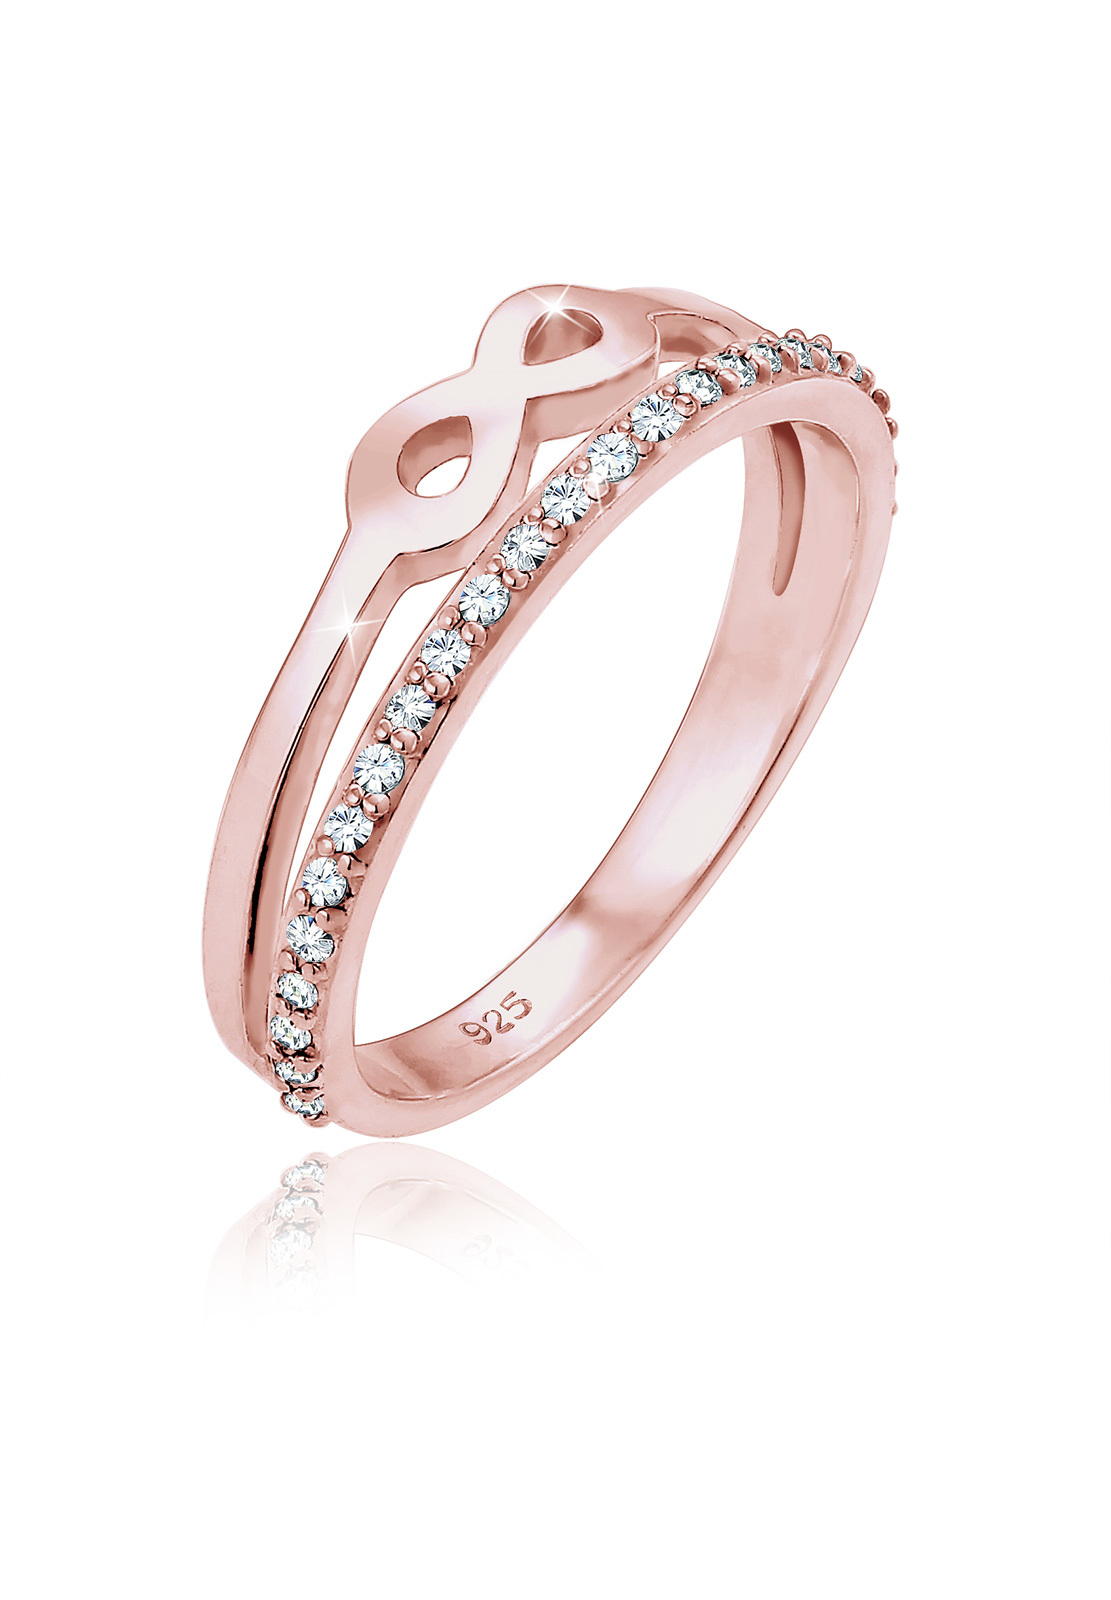 Ring Infinity | Kristall ( Weiß ) | 925 Sterling Silber Rosegold